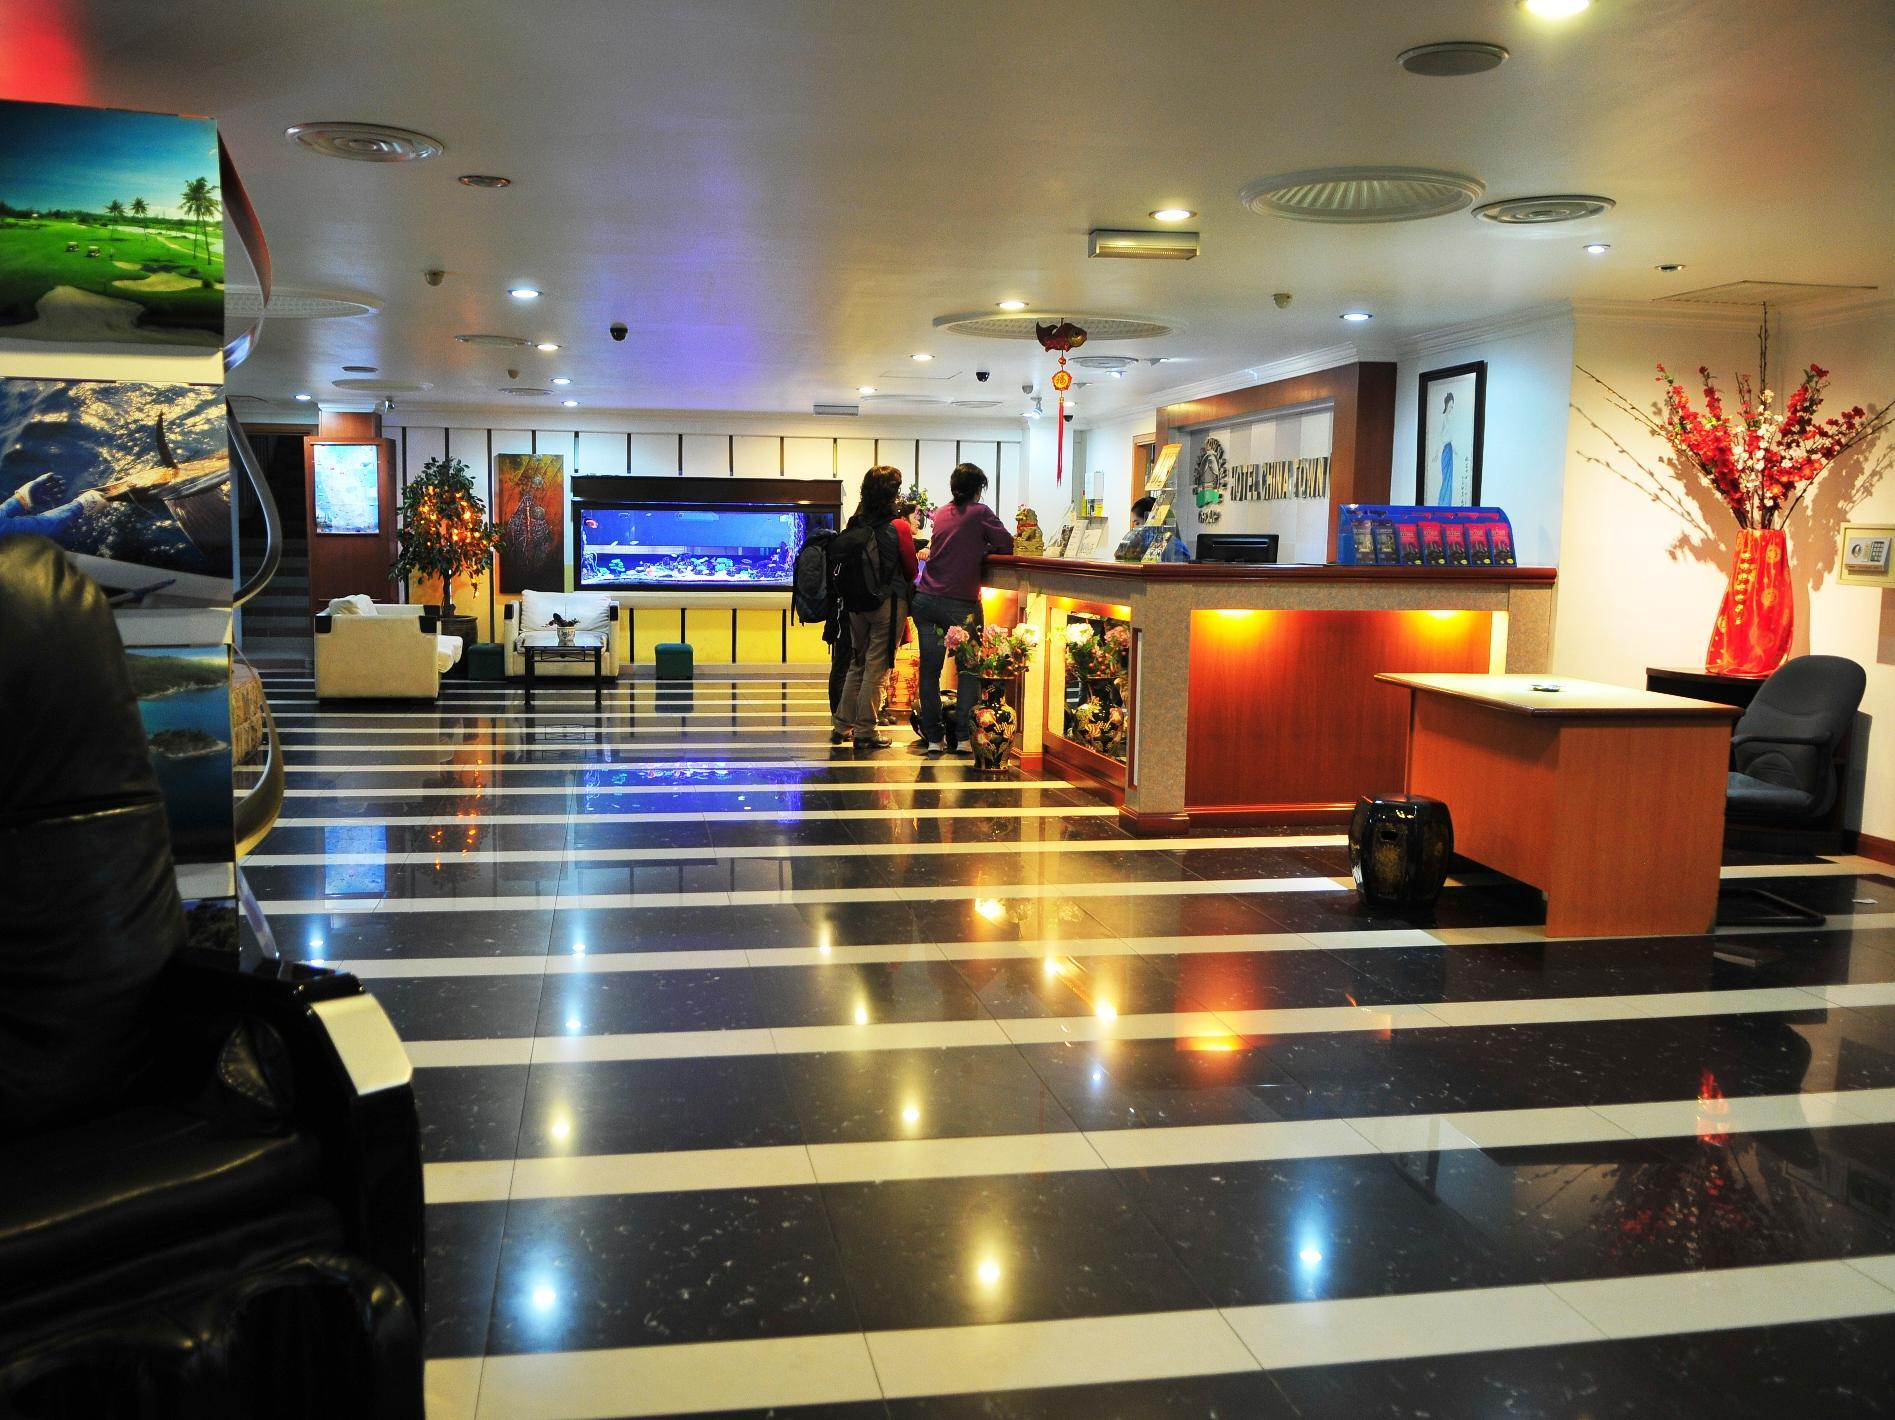 Hotel Chinatown 2 - Hotels and Accommodation in Malaysia, Asia